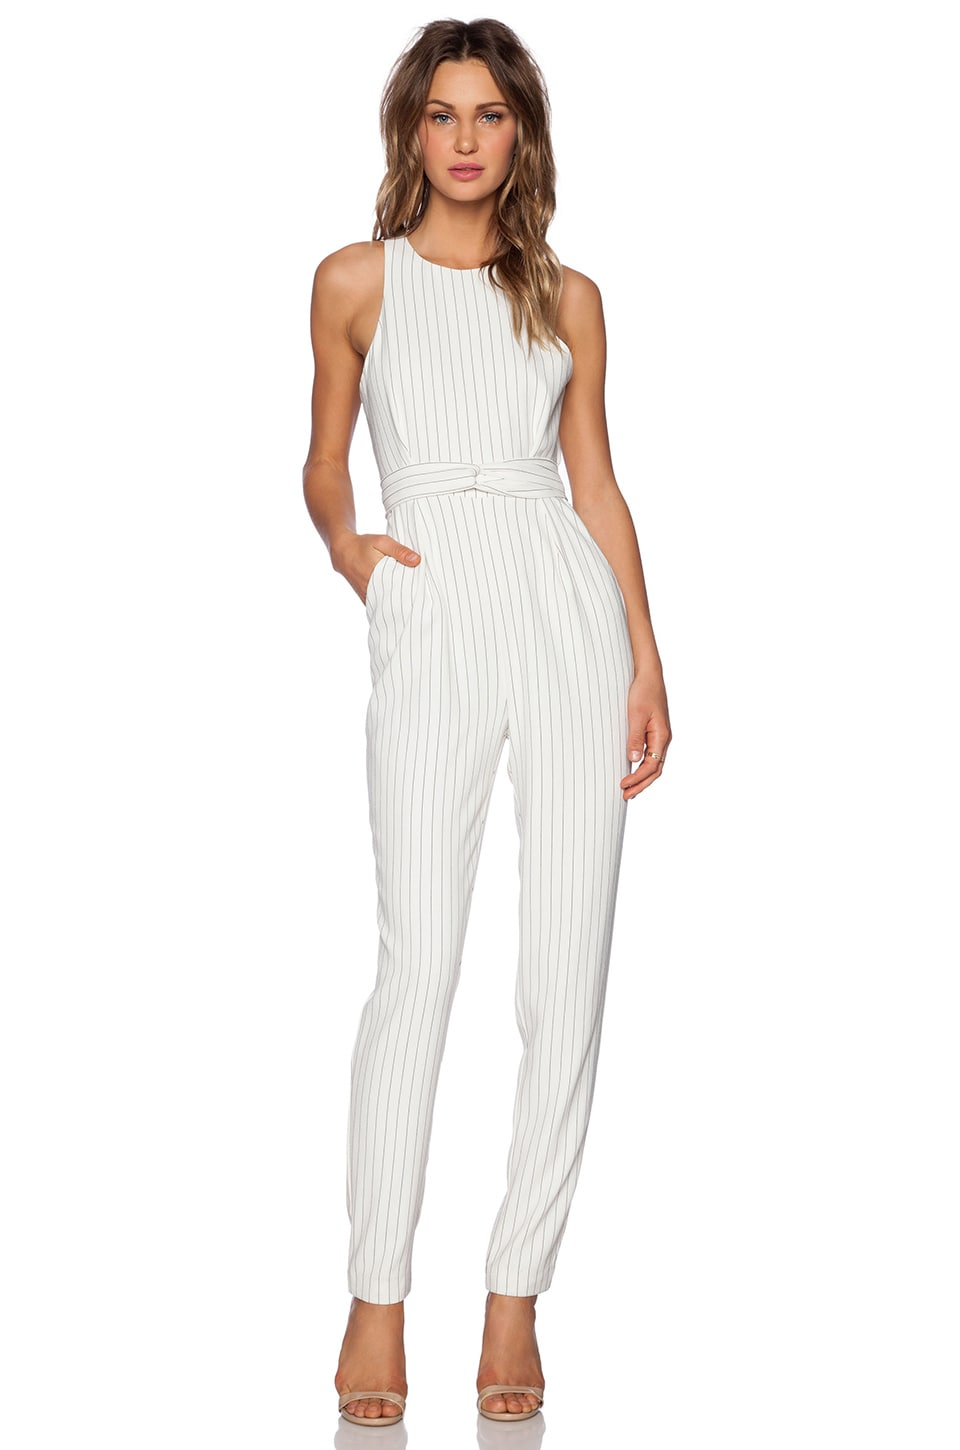 Finders Keepers As You Are Twist Jumpsuit in White Pinstripe